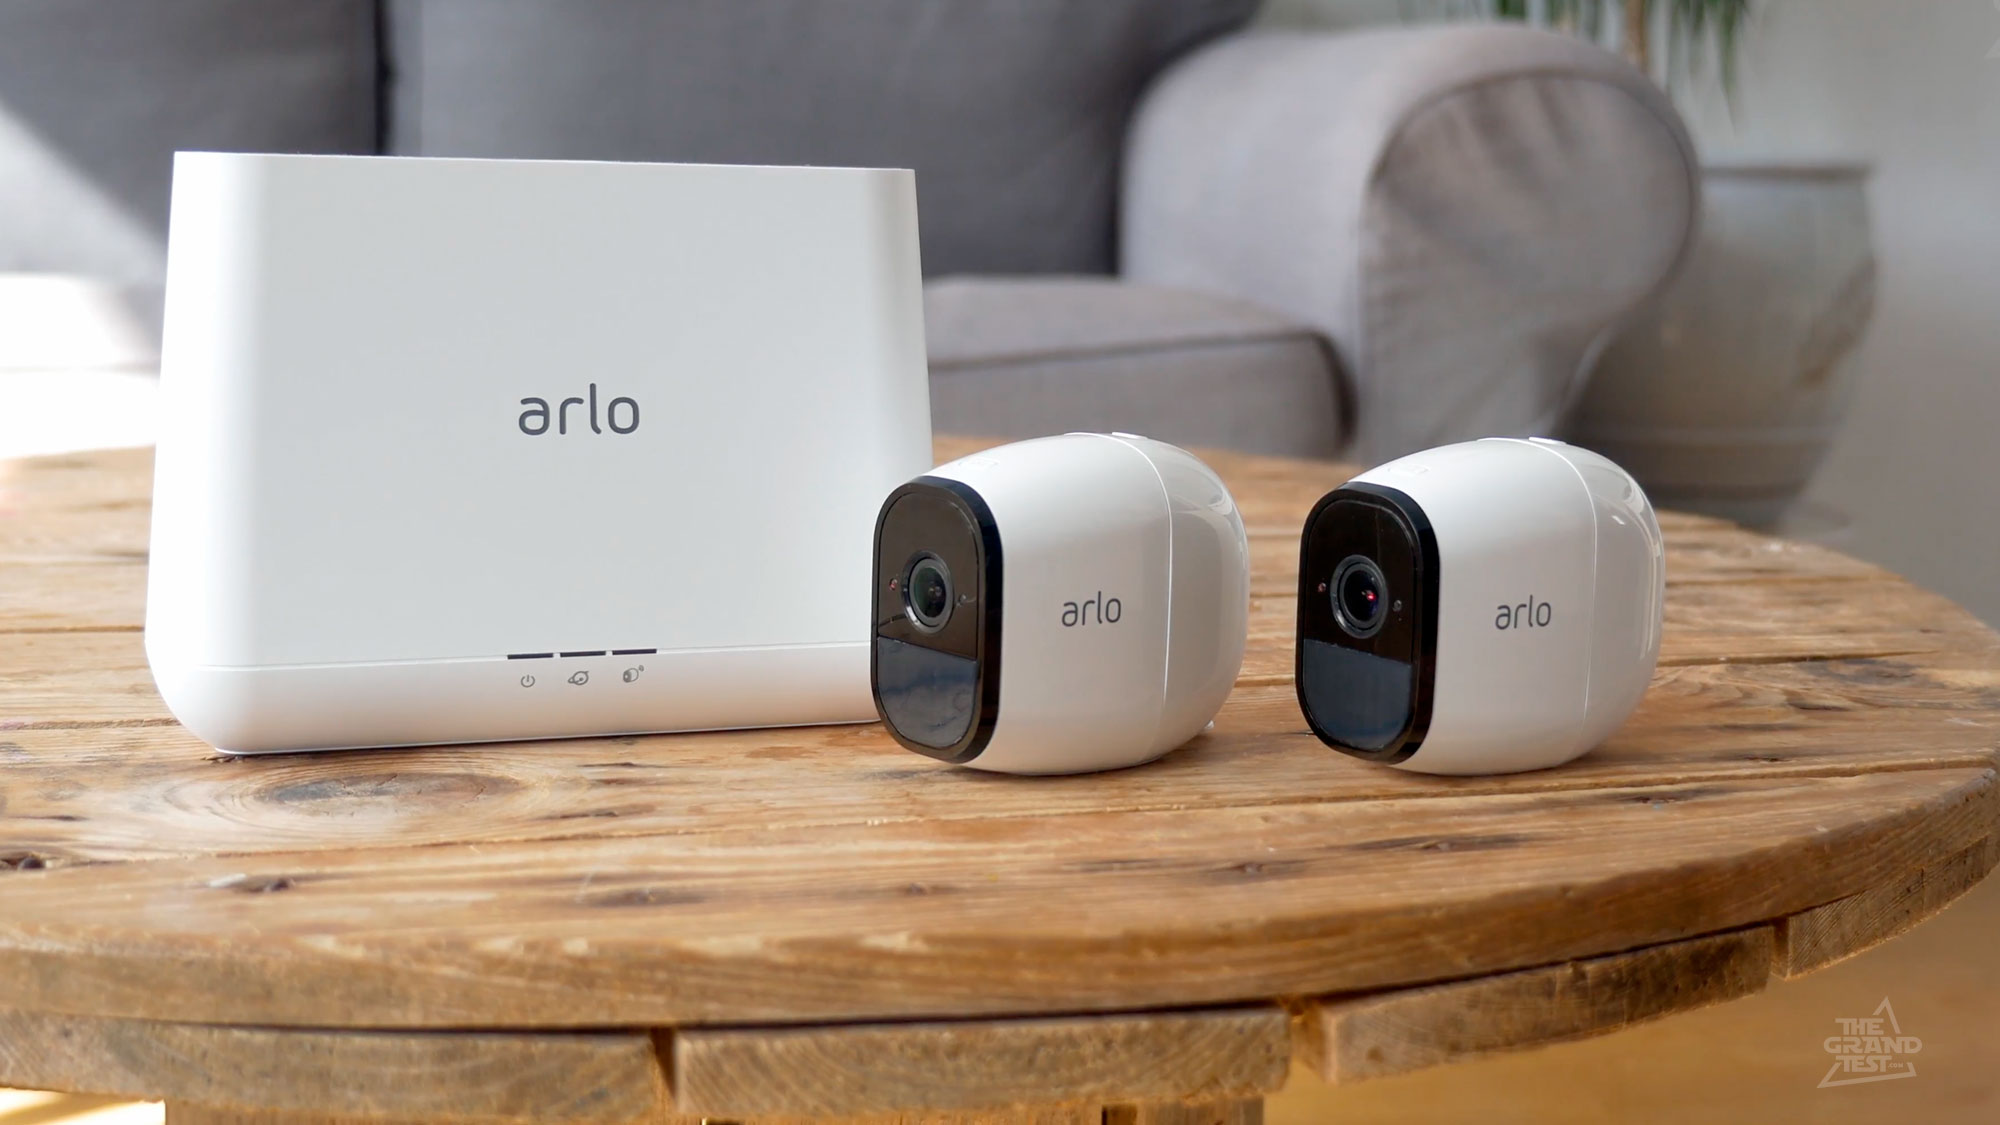 netgear arlo pro cam ra hd et wifi avec 6 mois d 39 autonomie. Black Bedroom Furniture Sets. Home Design Ideas